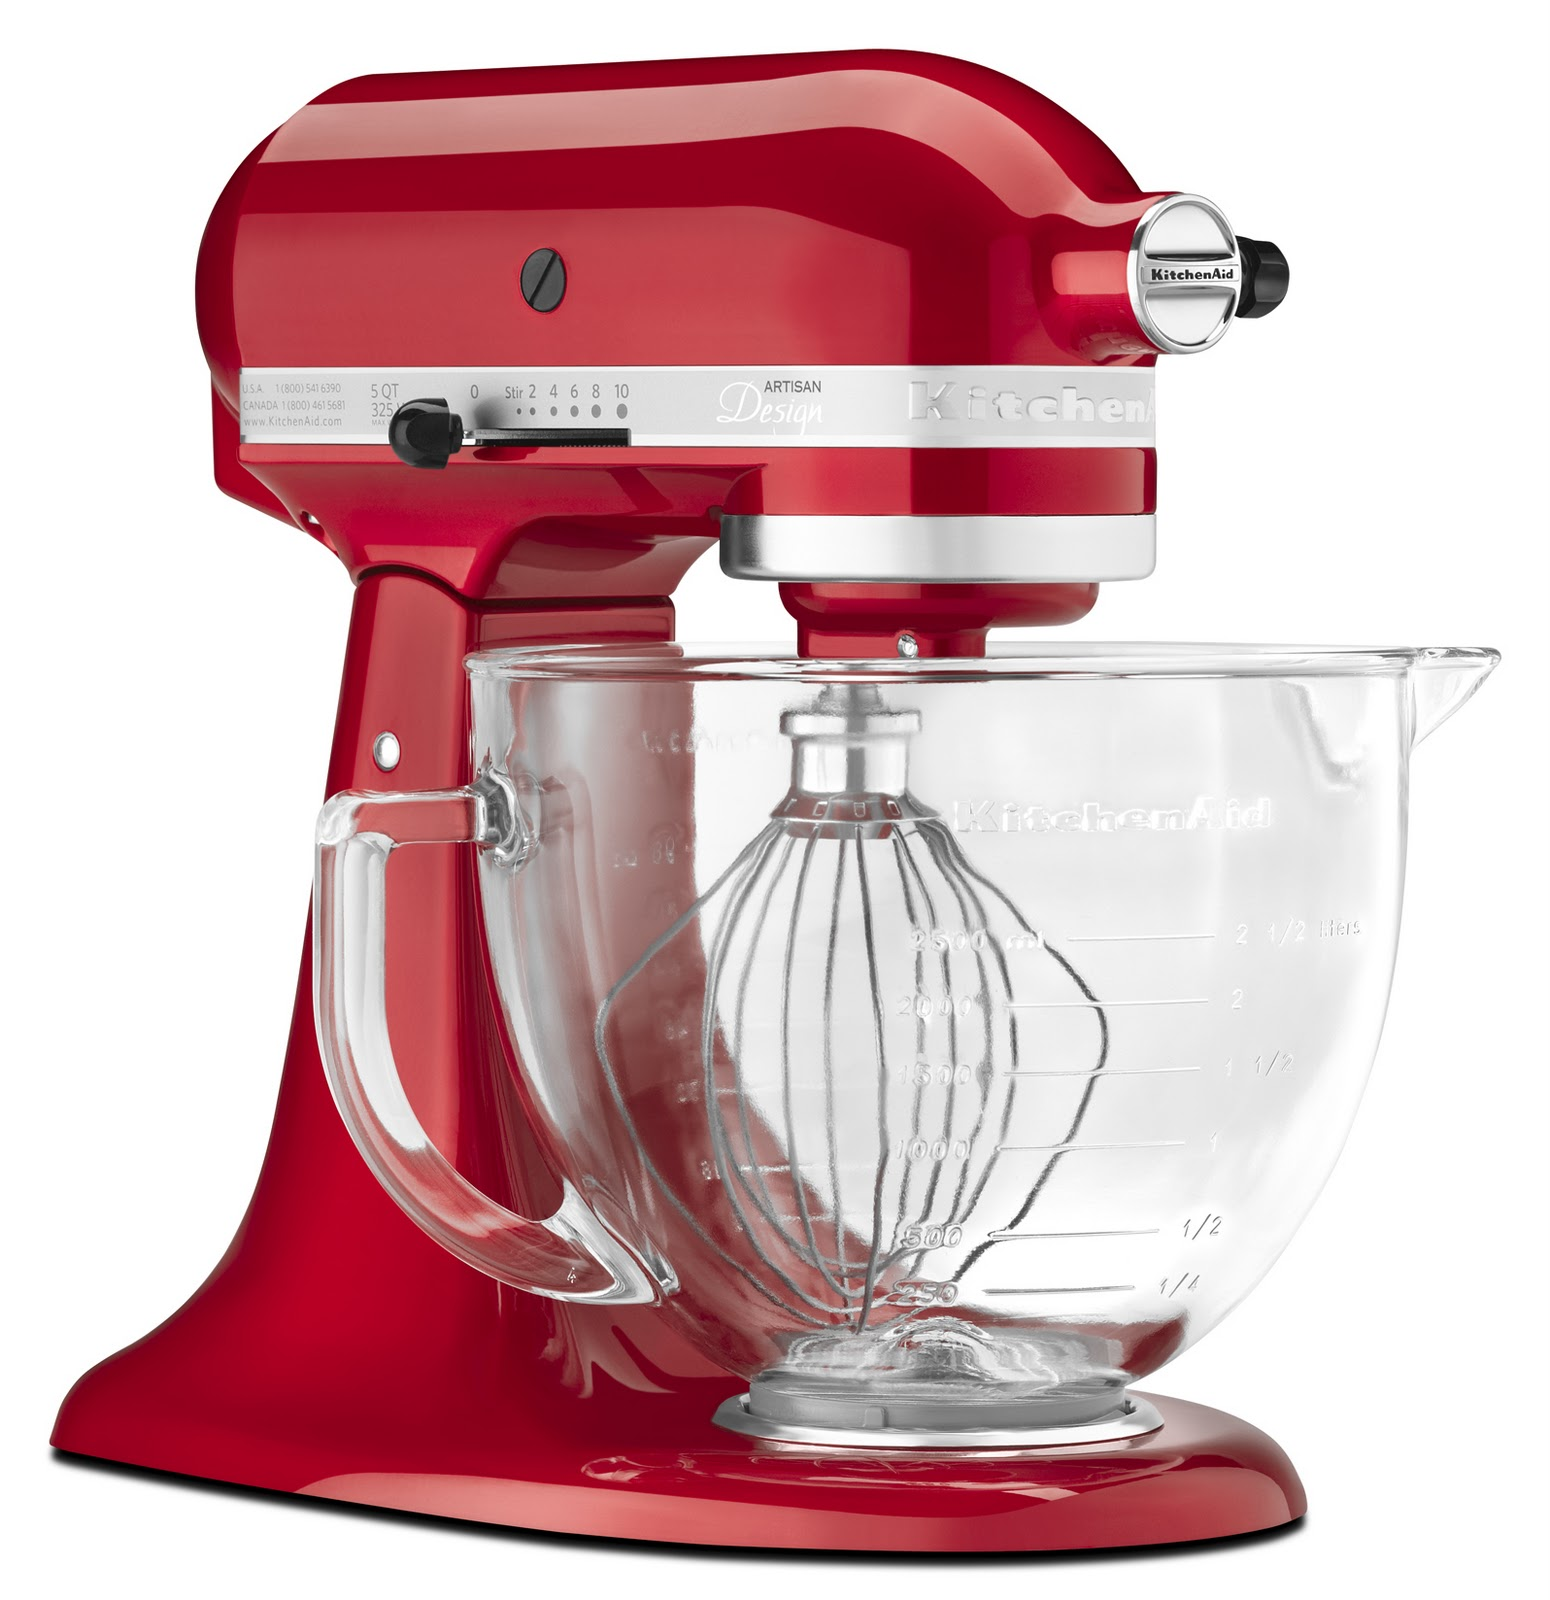 Accessories for kitchenaid stand mixer photo - 1